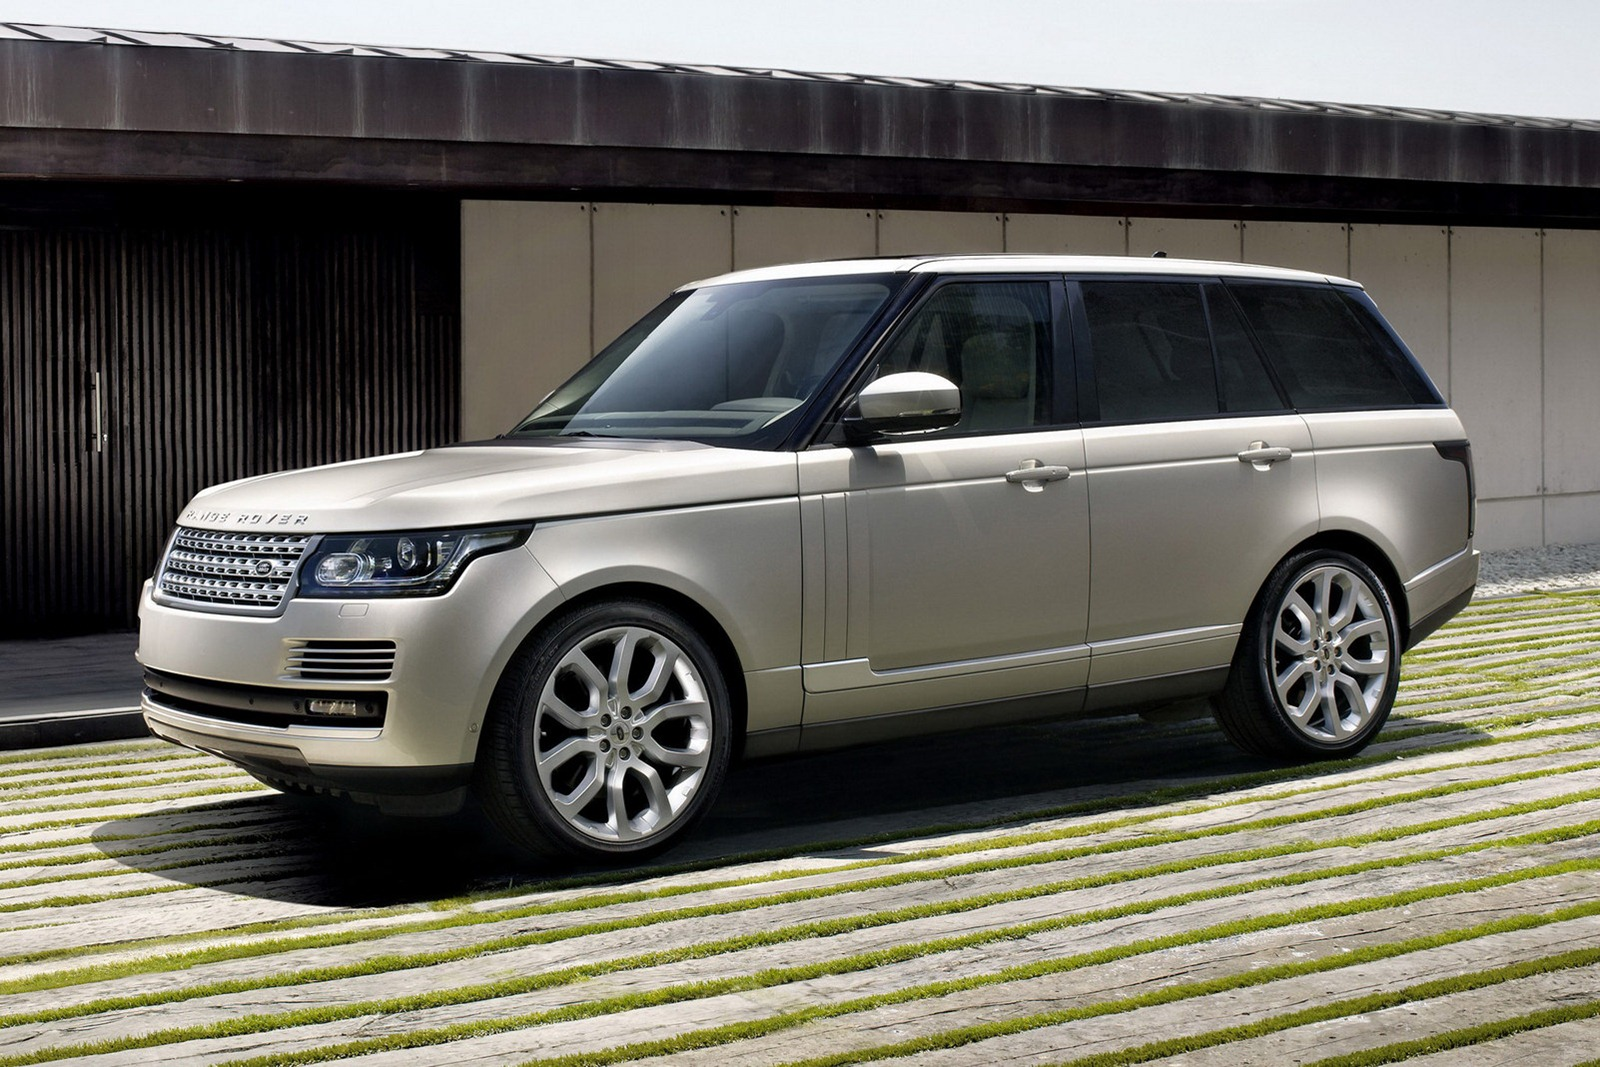 2013 Range Rover SUV 2013 Range Rover SUV   A Review